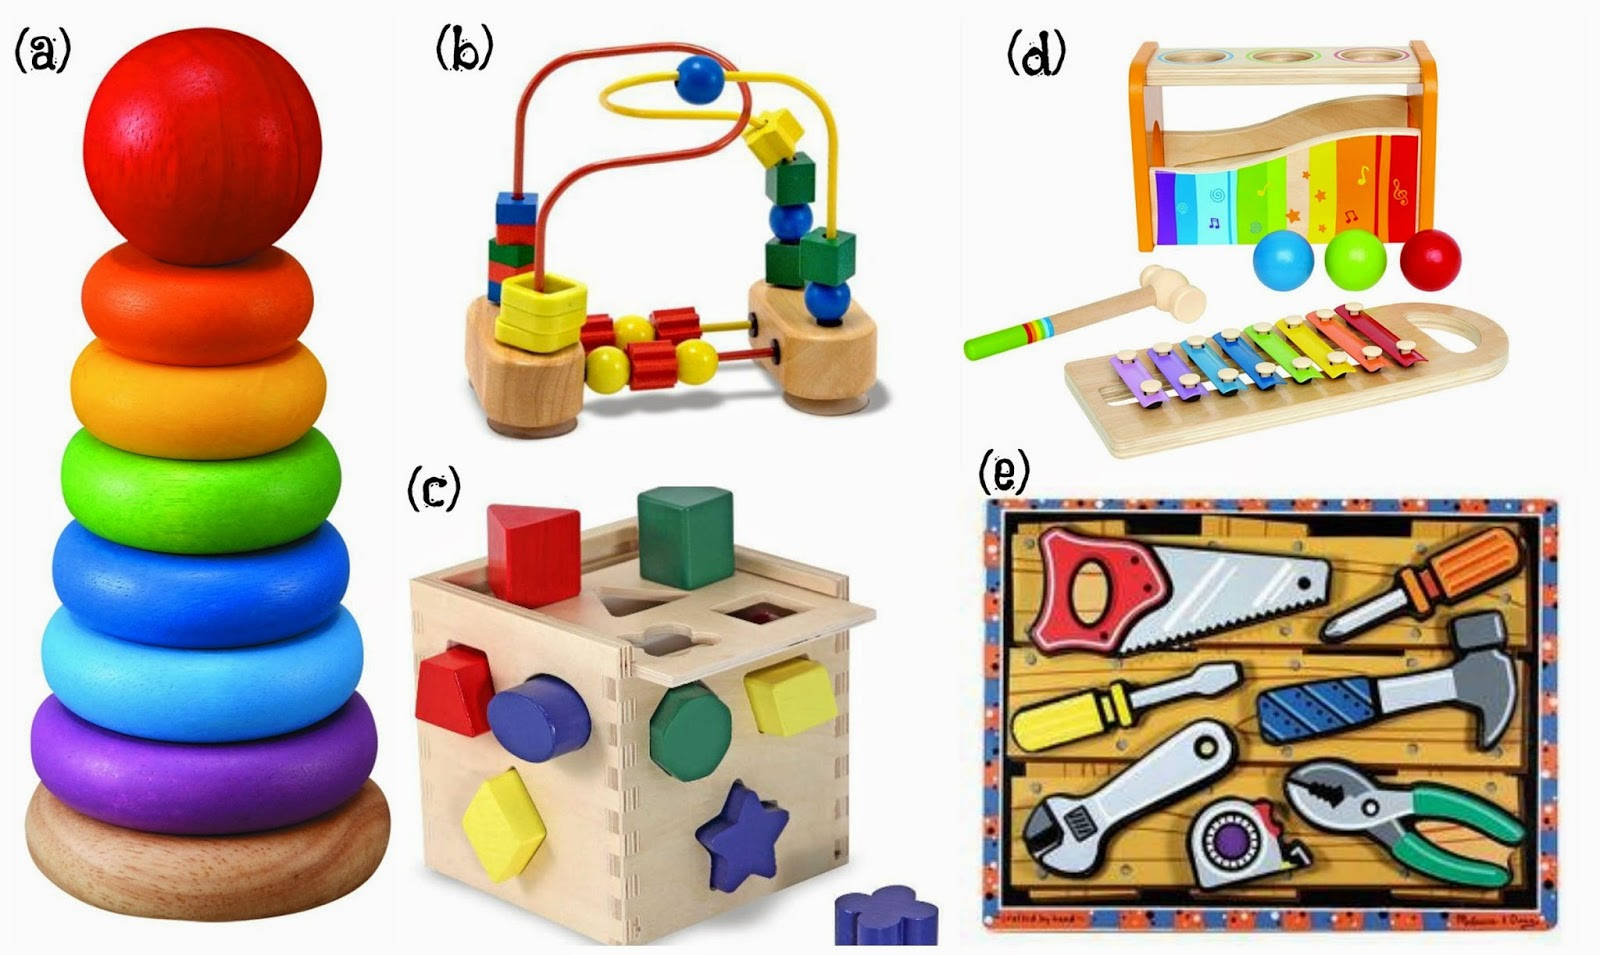 our homemaking story: classic/wooden toy gifts - 1 yr old boy